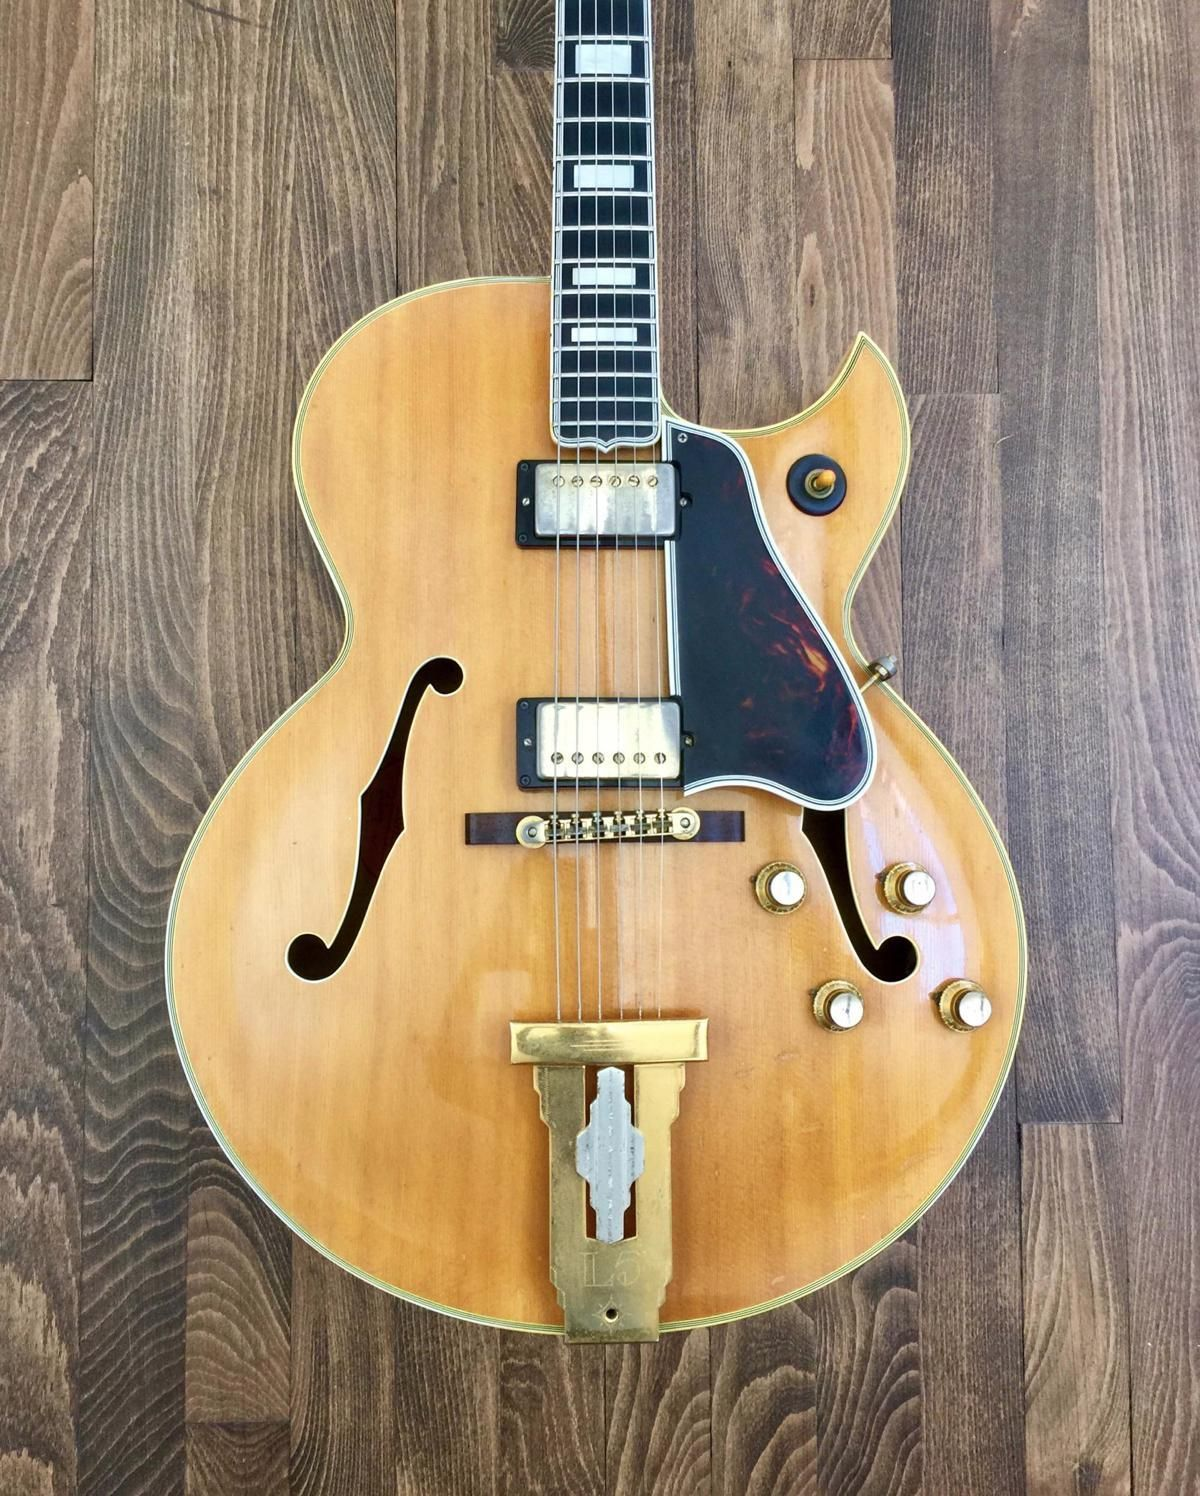 1961 Gibson L 5 Cesn Archtop Guitar Archtop Guitar Cool